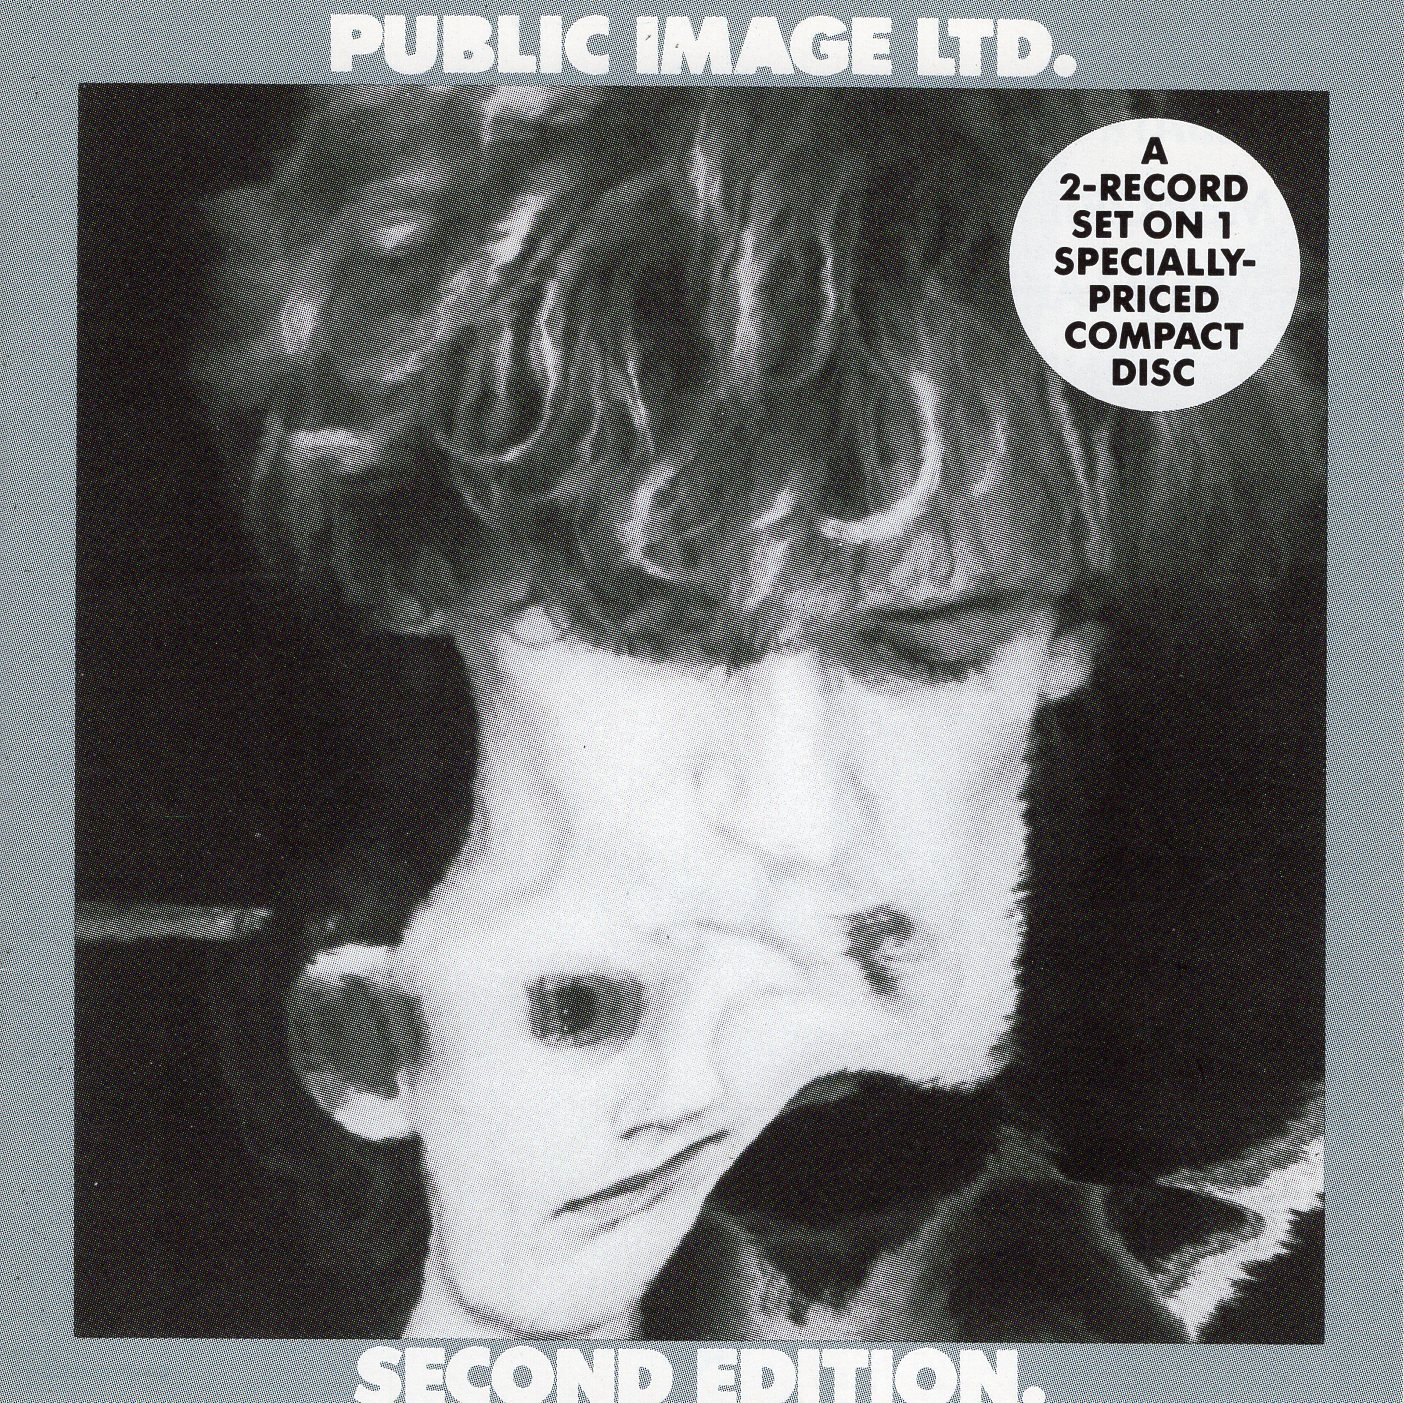 """Public Image Ltd. Second Edition."" Public Image"